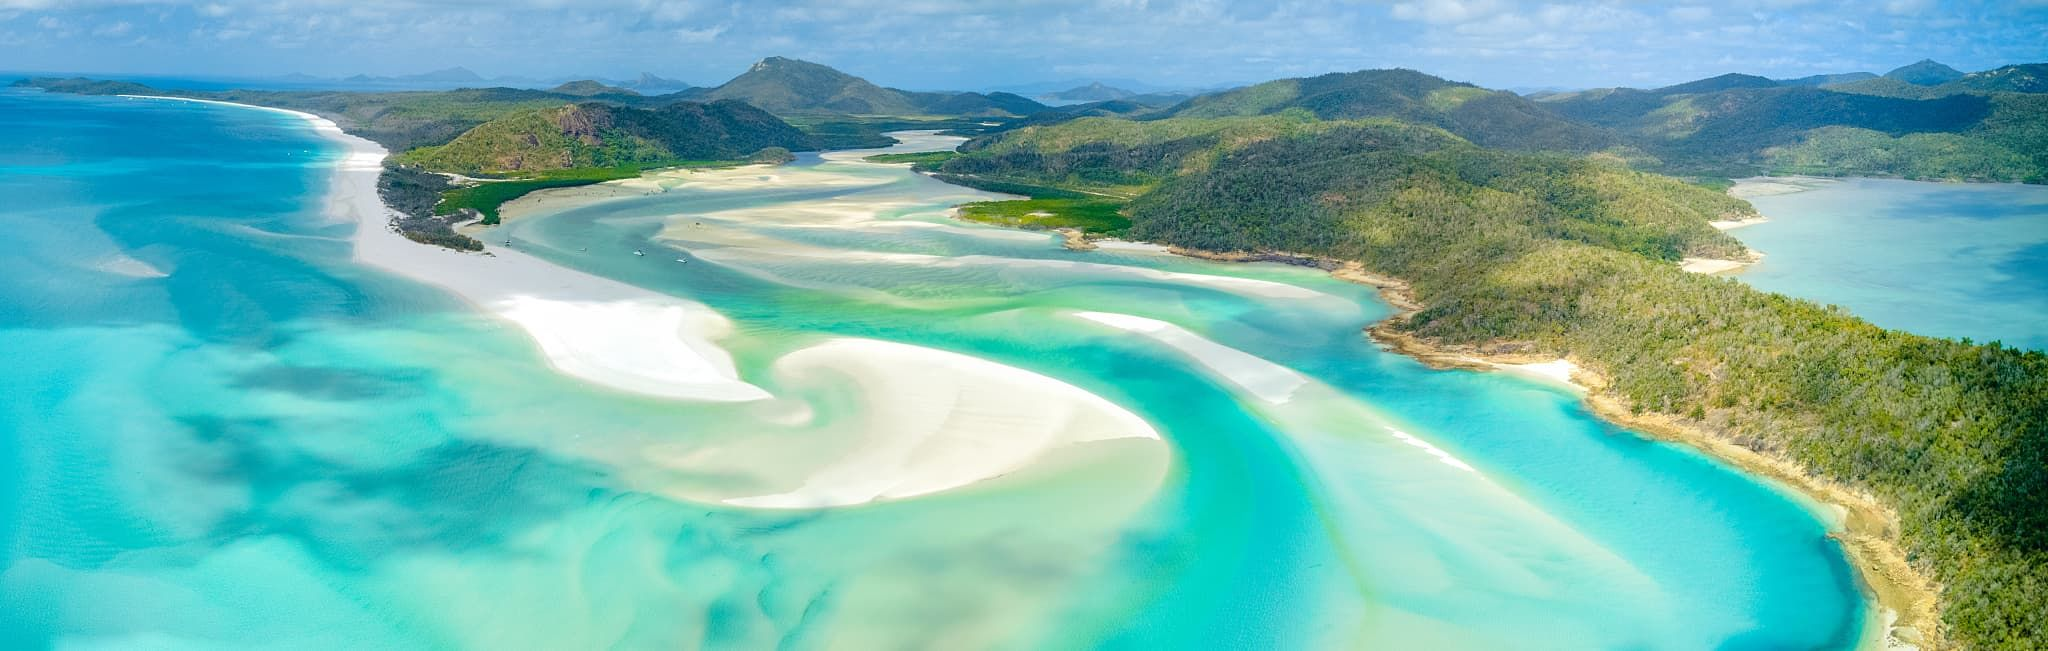 Aerial view of The Whitsunday Islands, between the coast of Queensland, Australia and the Great Barrier Reef.